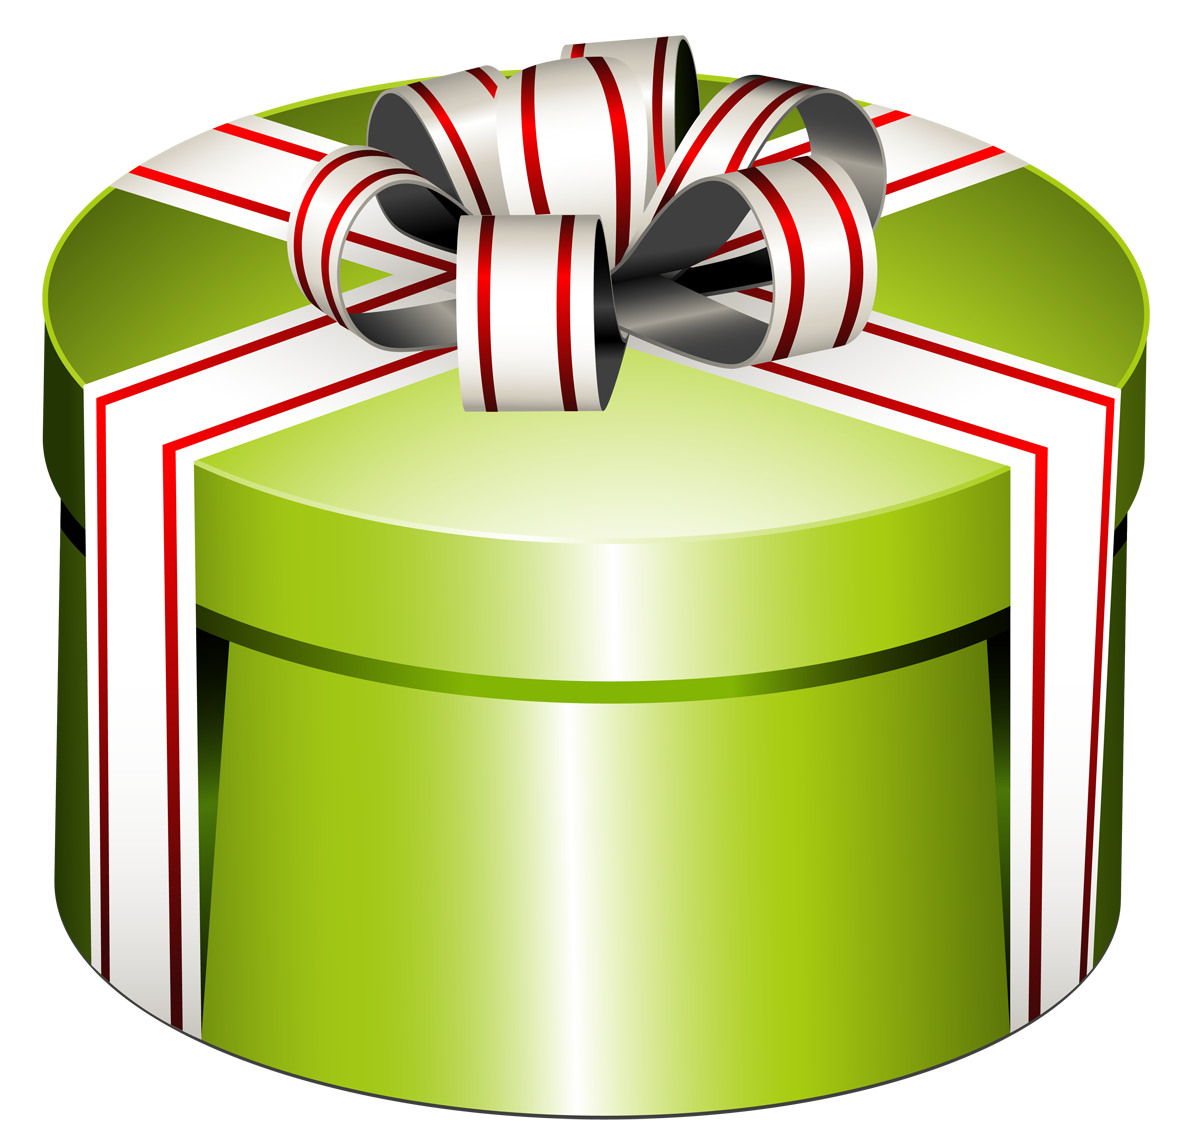 Green Round Present Box with Bow PNG Clipart.